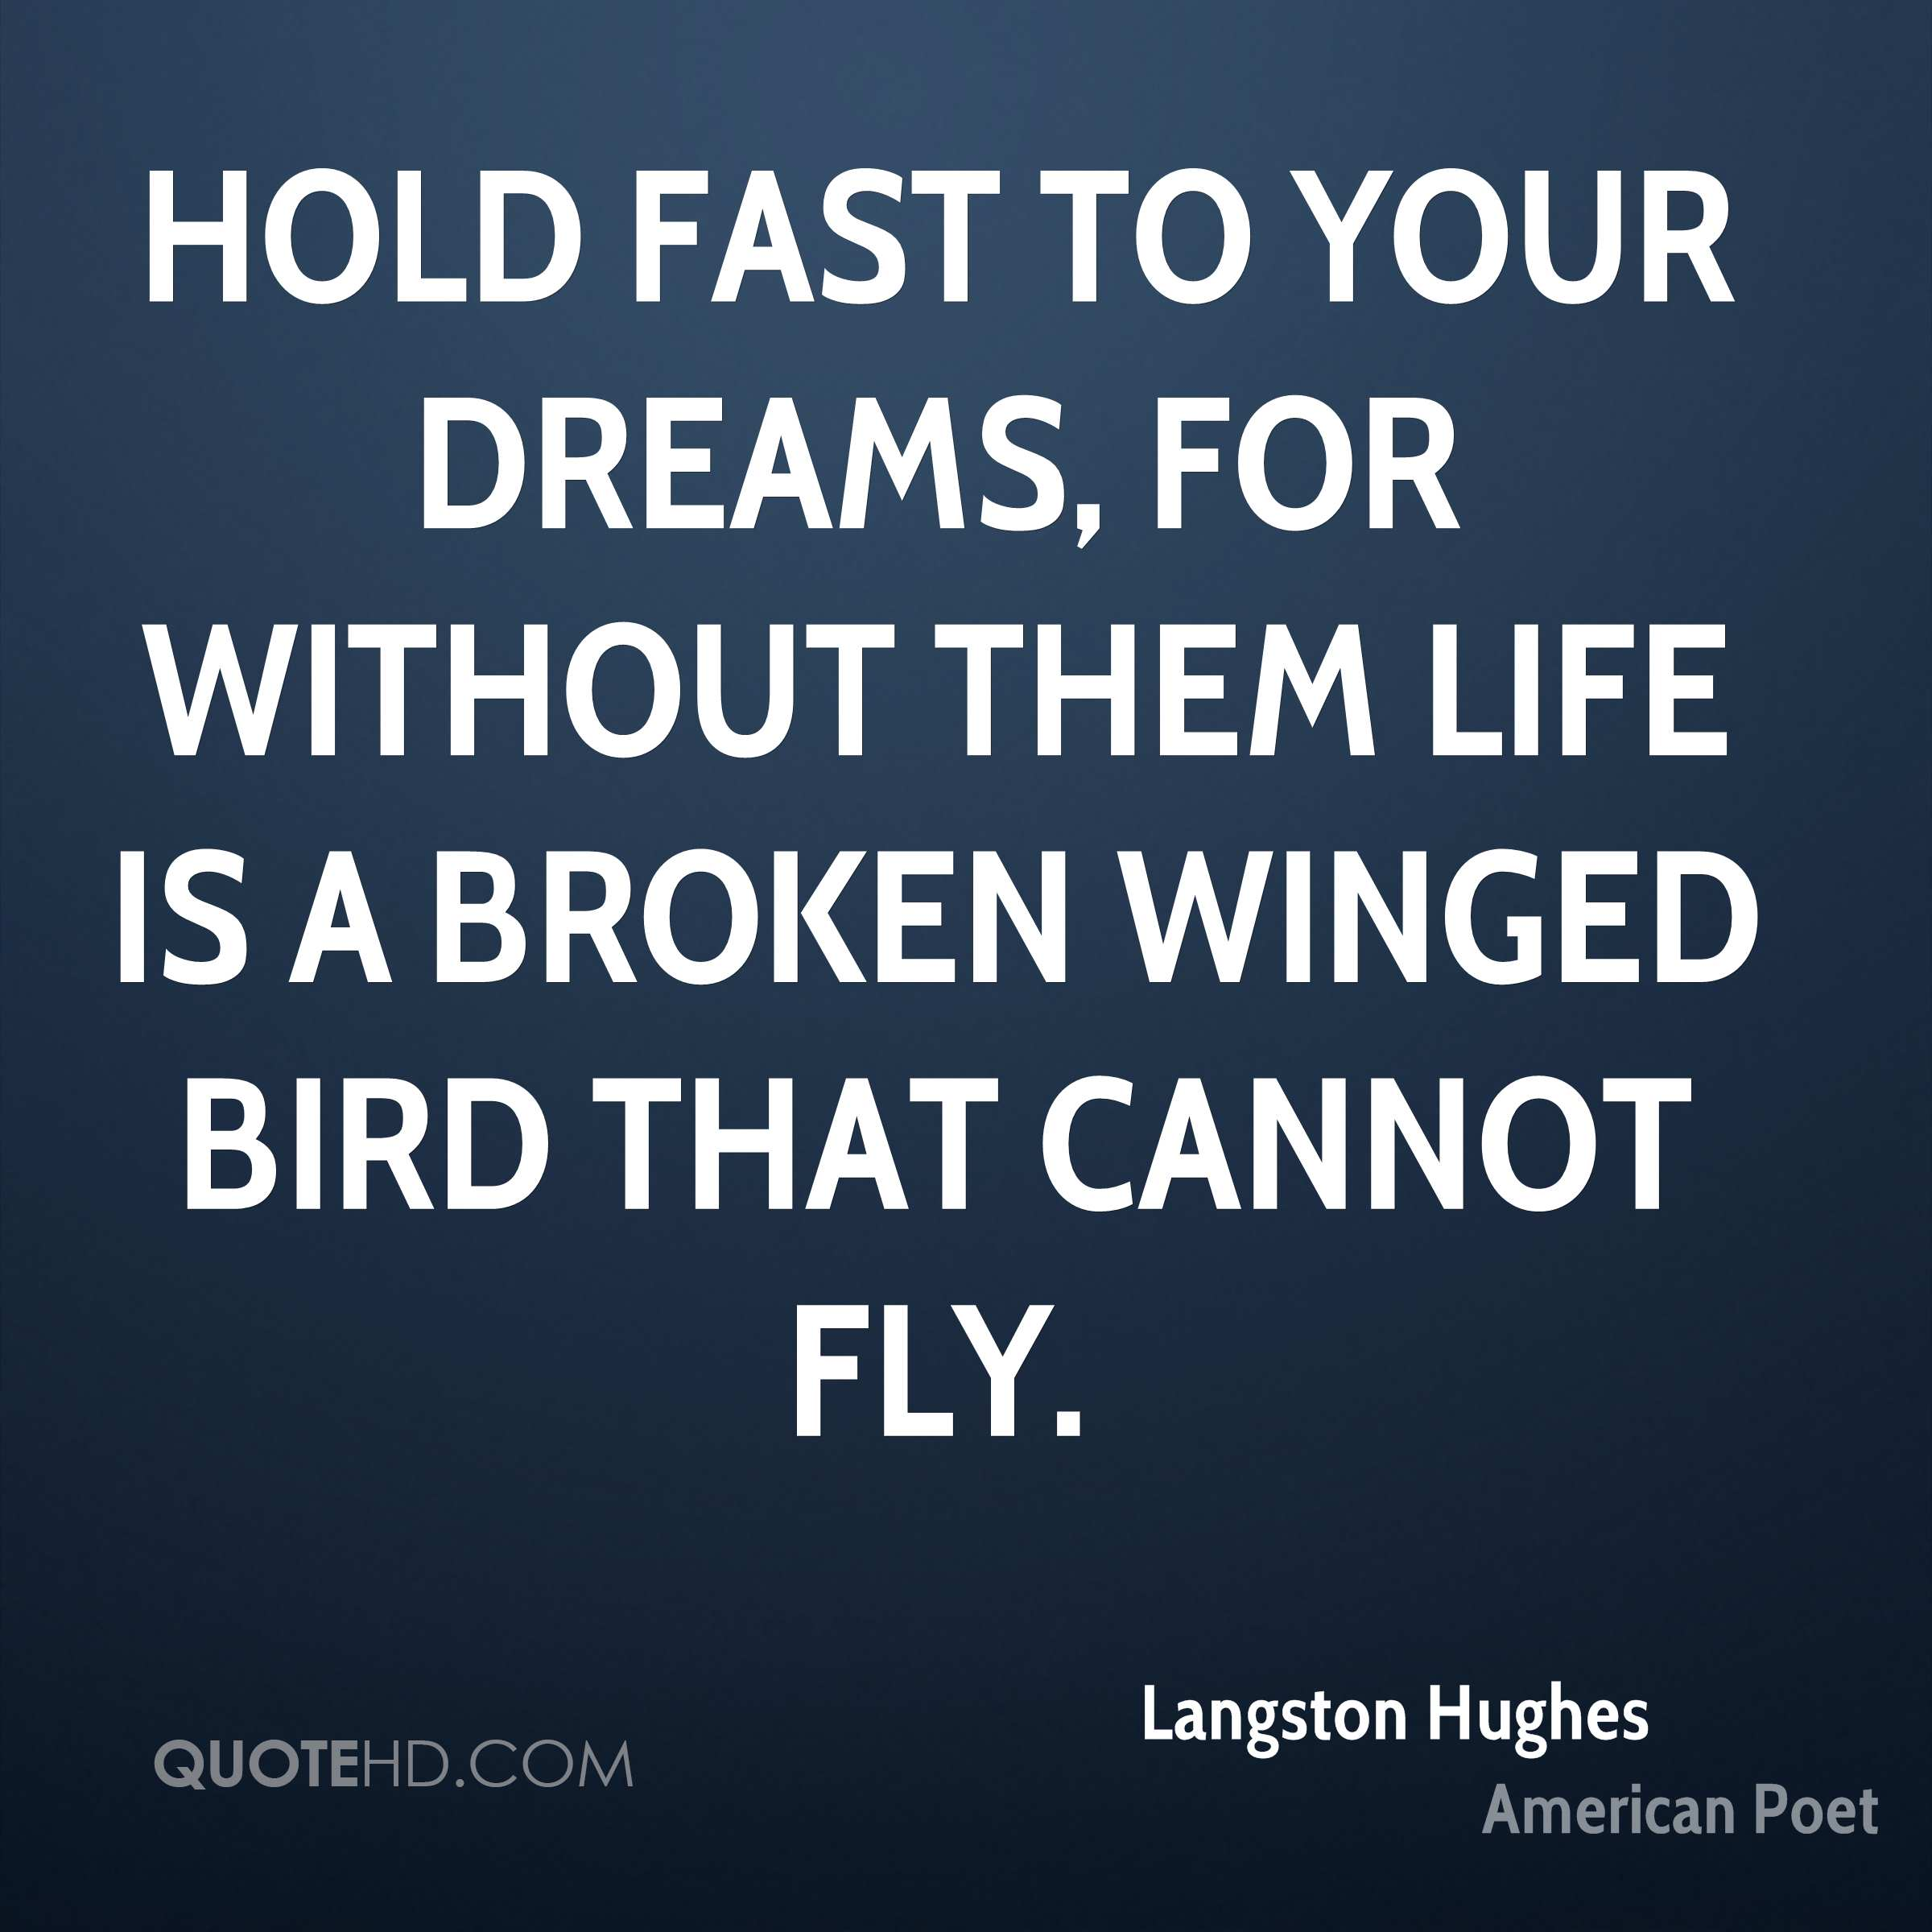 Hold fast to your dreams, for without them life is a broken winged bird that cannot fly.